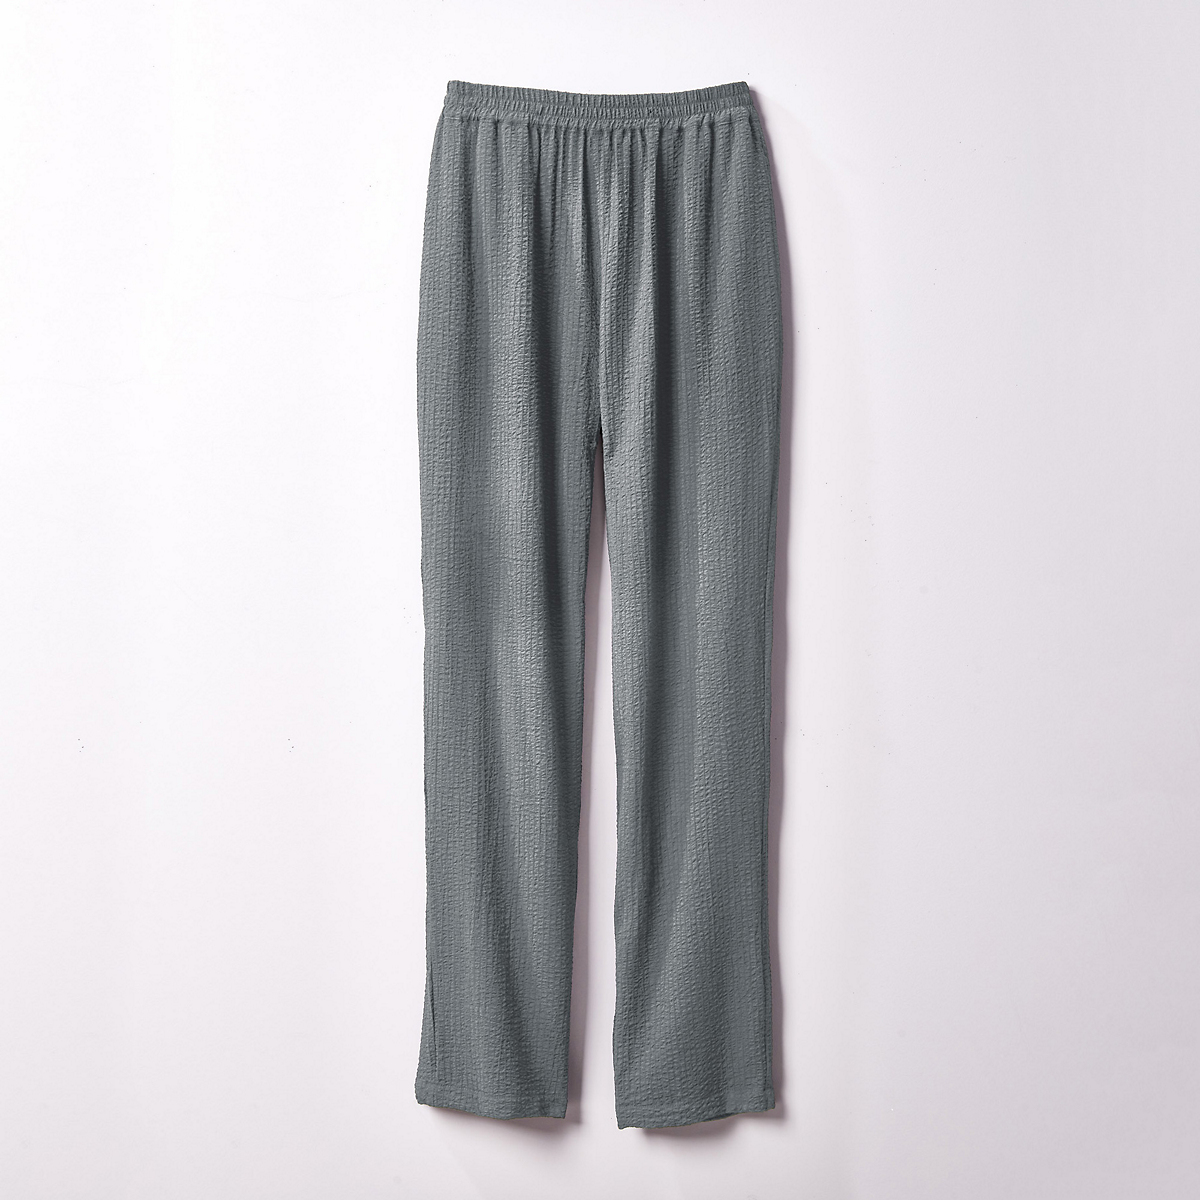 All-Around Pants